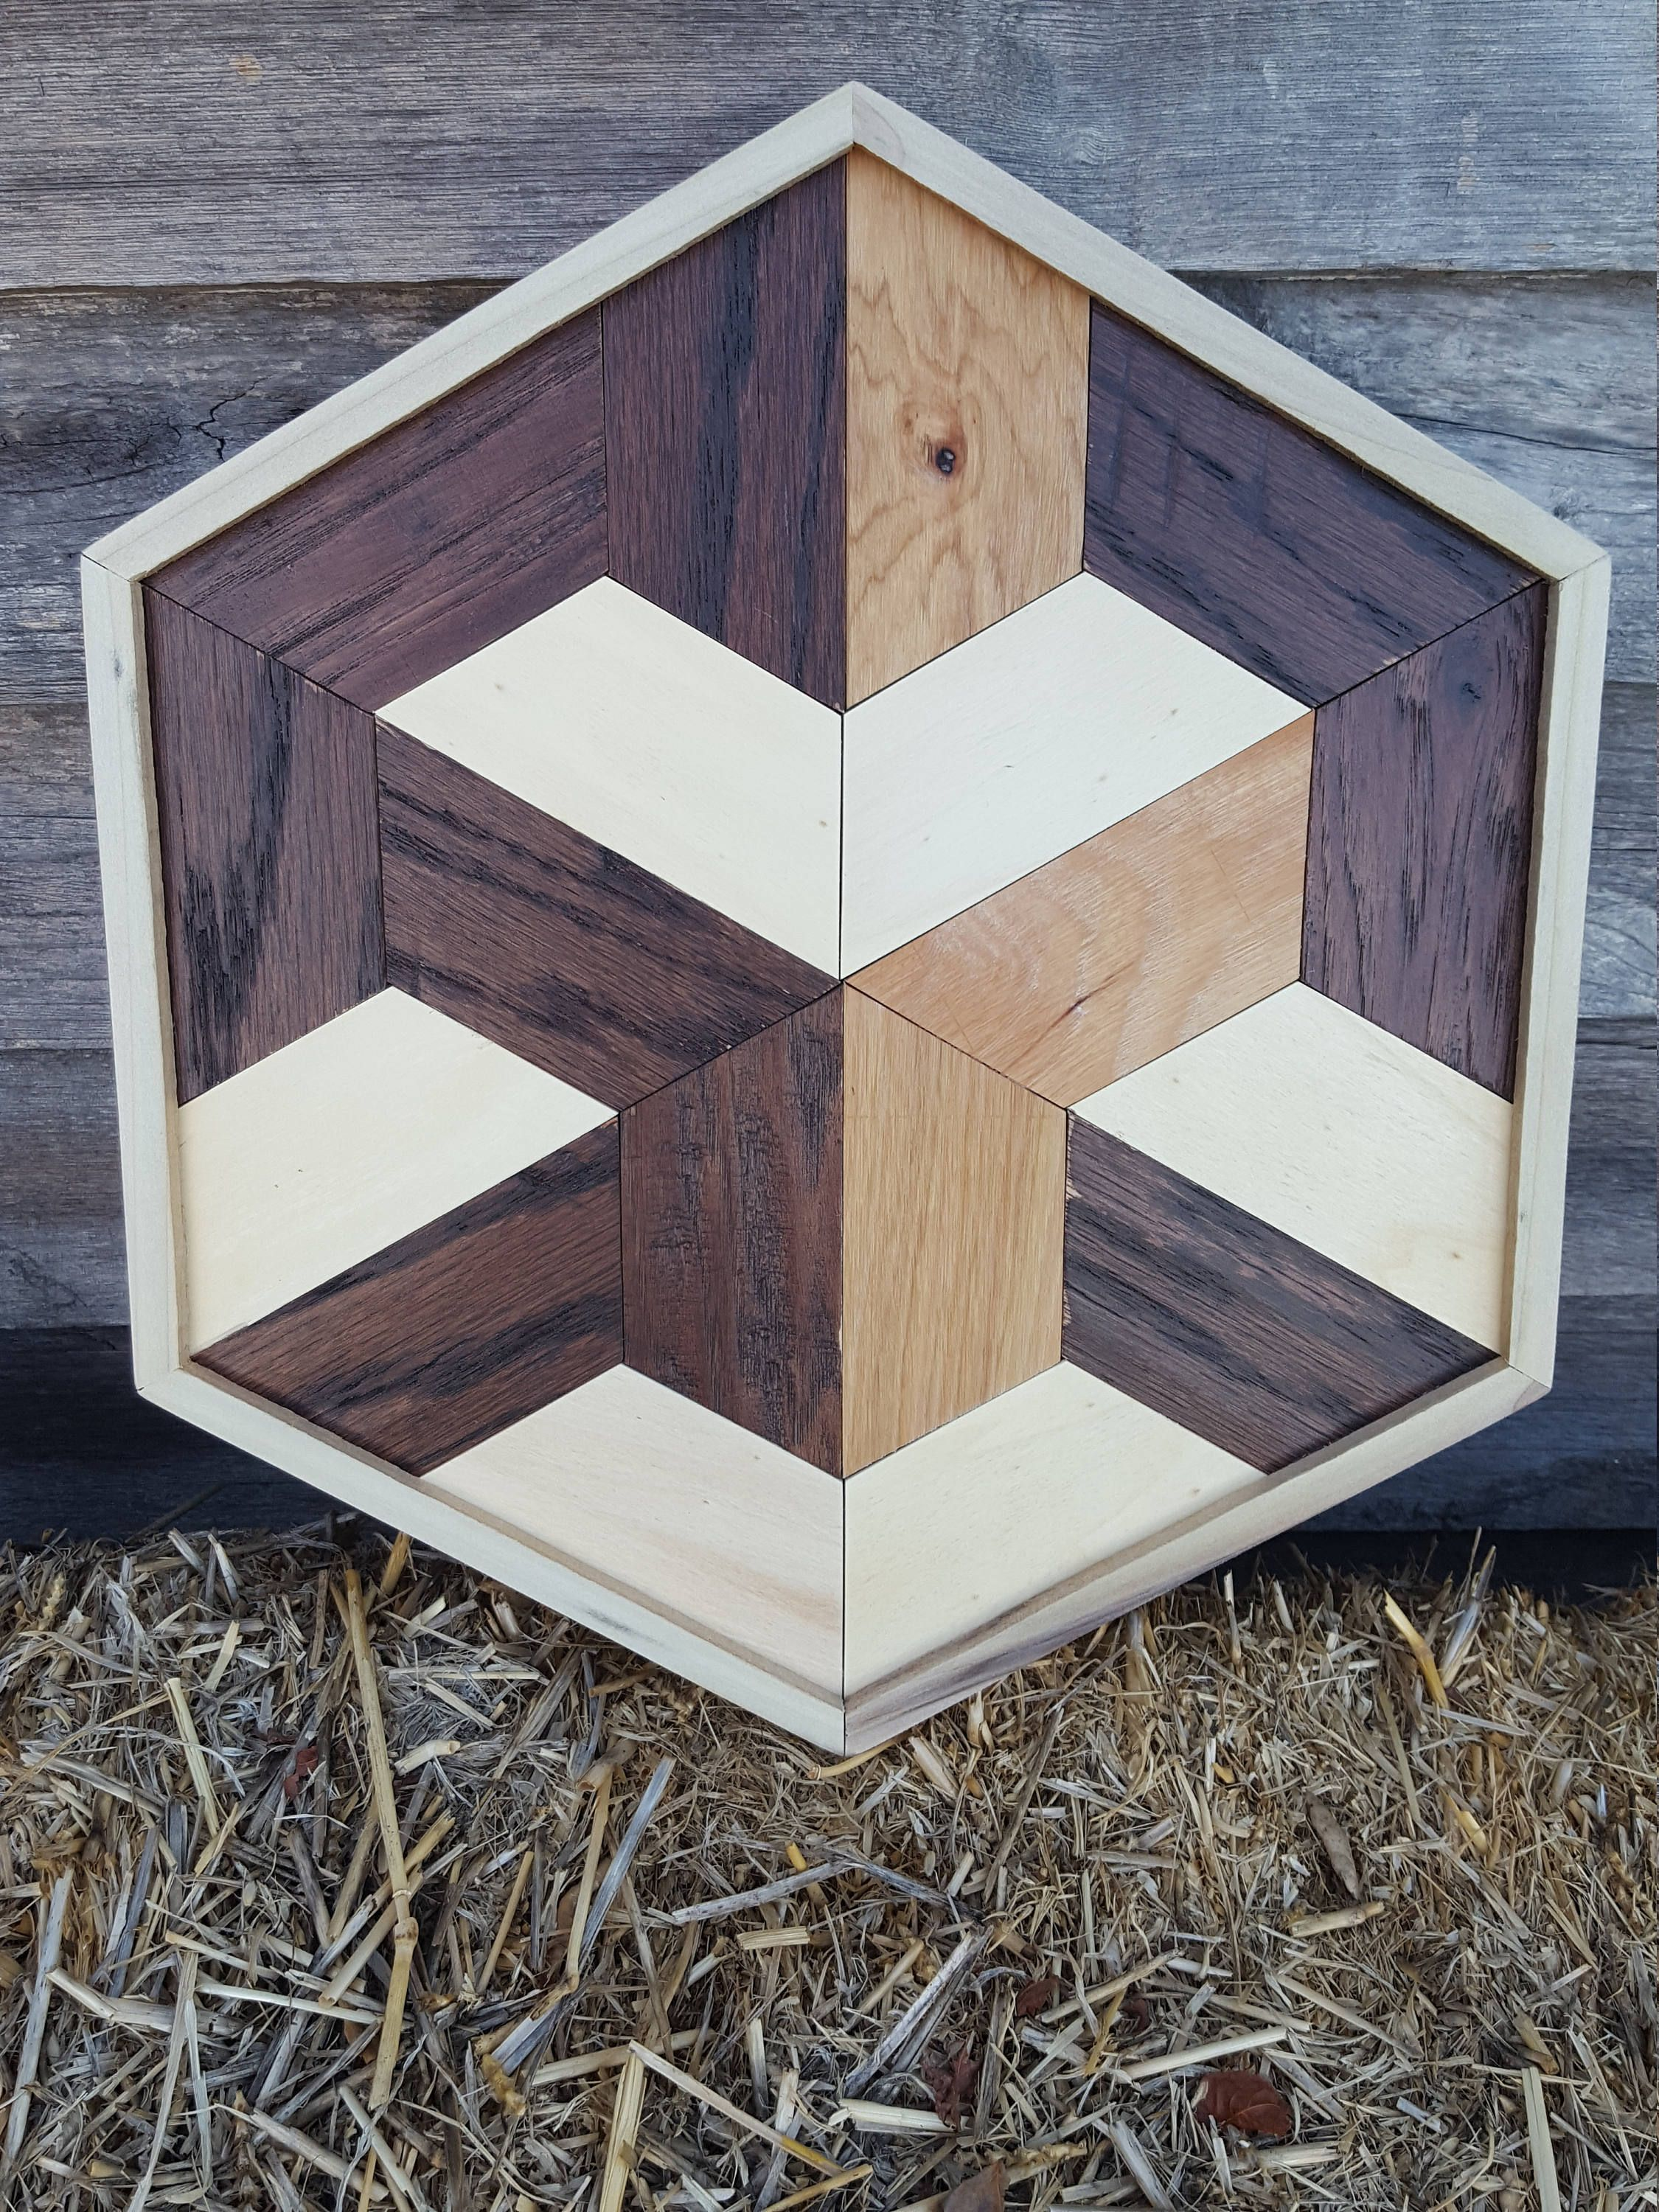 illusion geometric wood optical wall reclaimed rustic wooden shape projects pallet sold etsy repurposed furniture 3d woodworking table diy designs